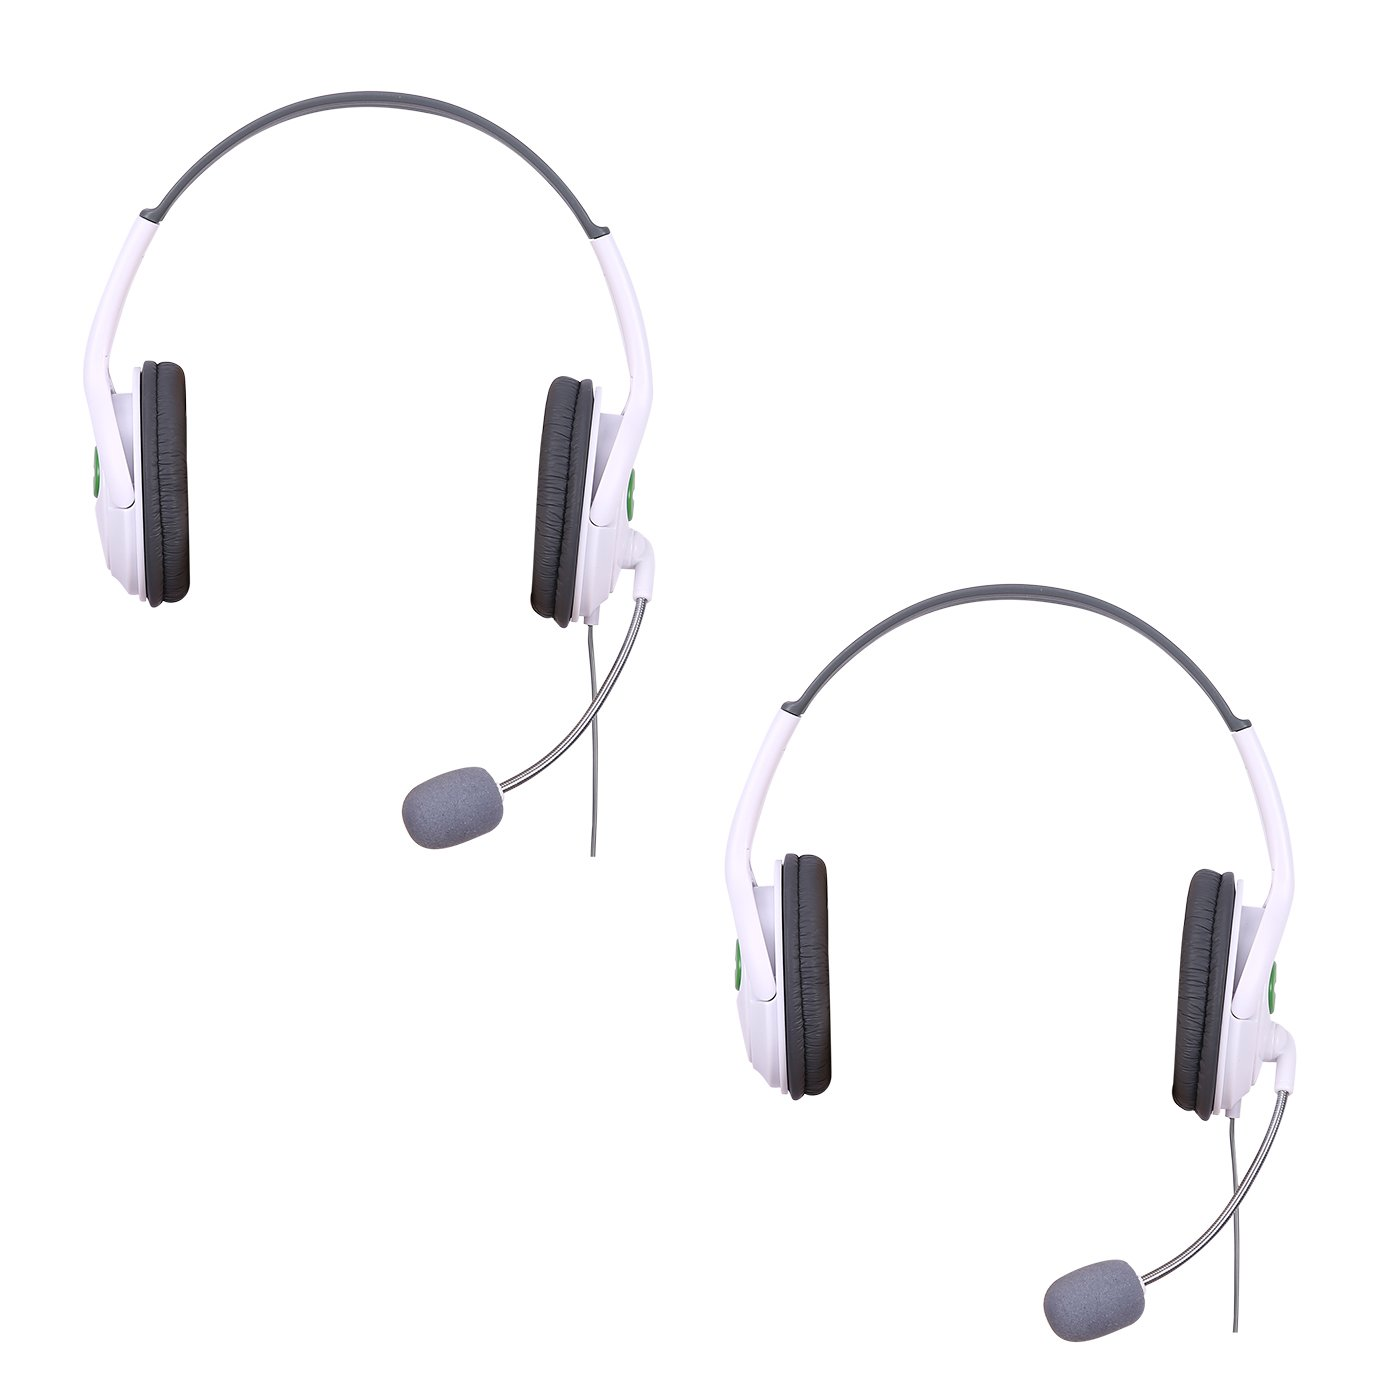 HDE Headset for Xbox 360 Console and Live Service Two Pack Headphone and Microphone for Game Chat Compatible with Wireless Controllers (2pk)